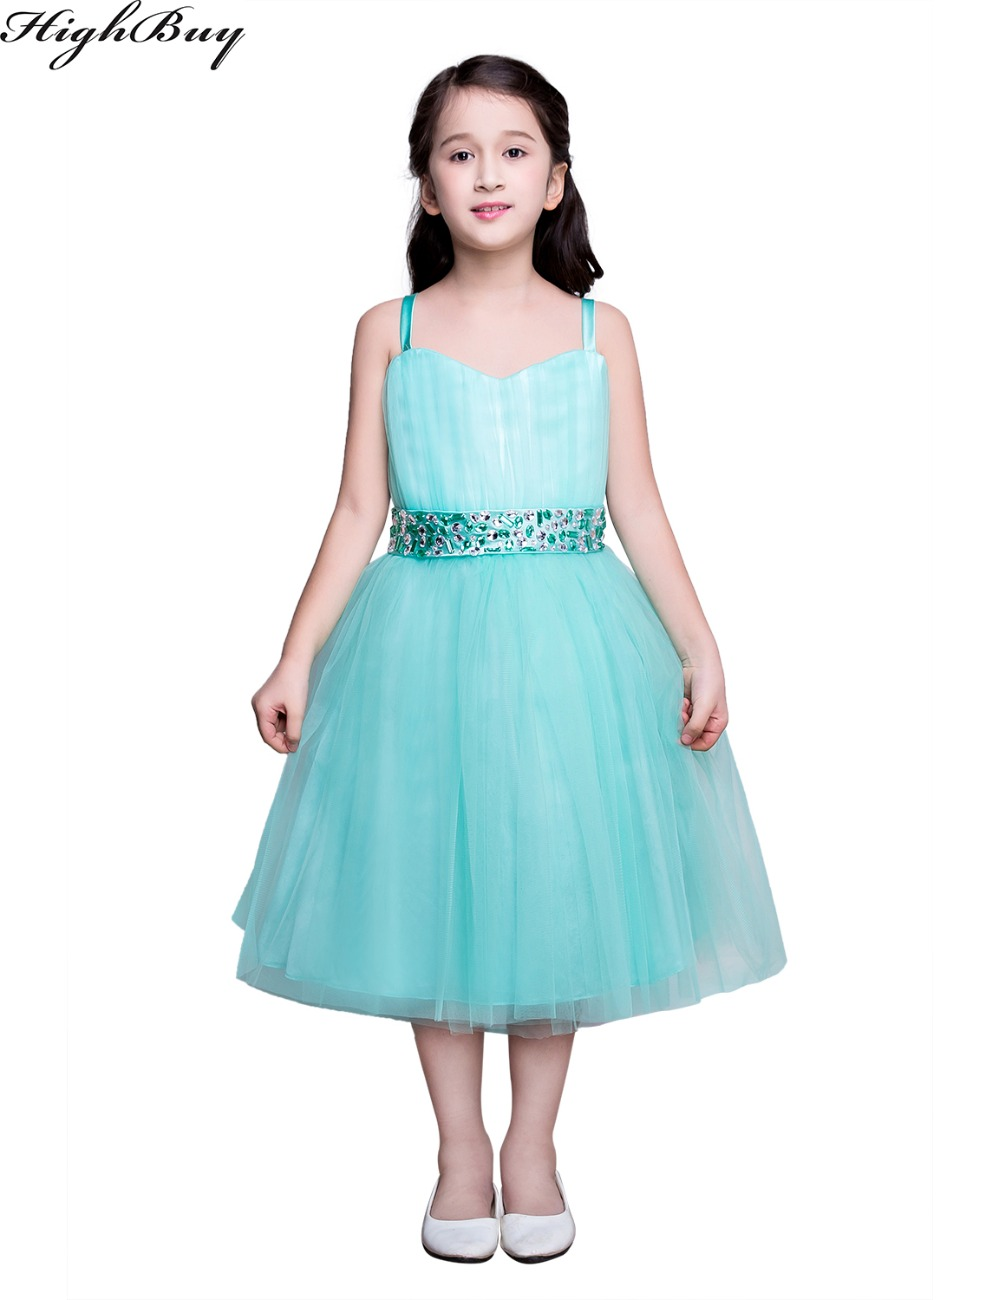 Highbuy real flower girl dresses turquoise party communion for Girls dresses for a wedding